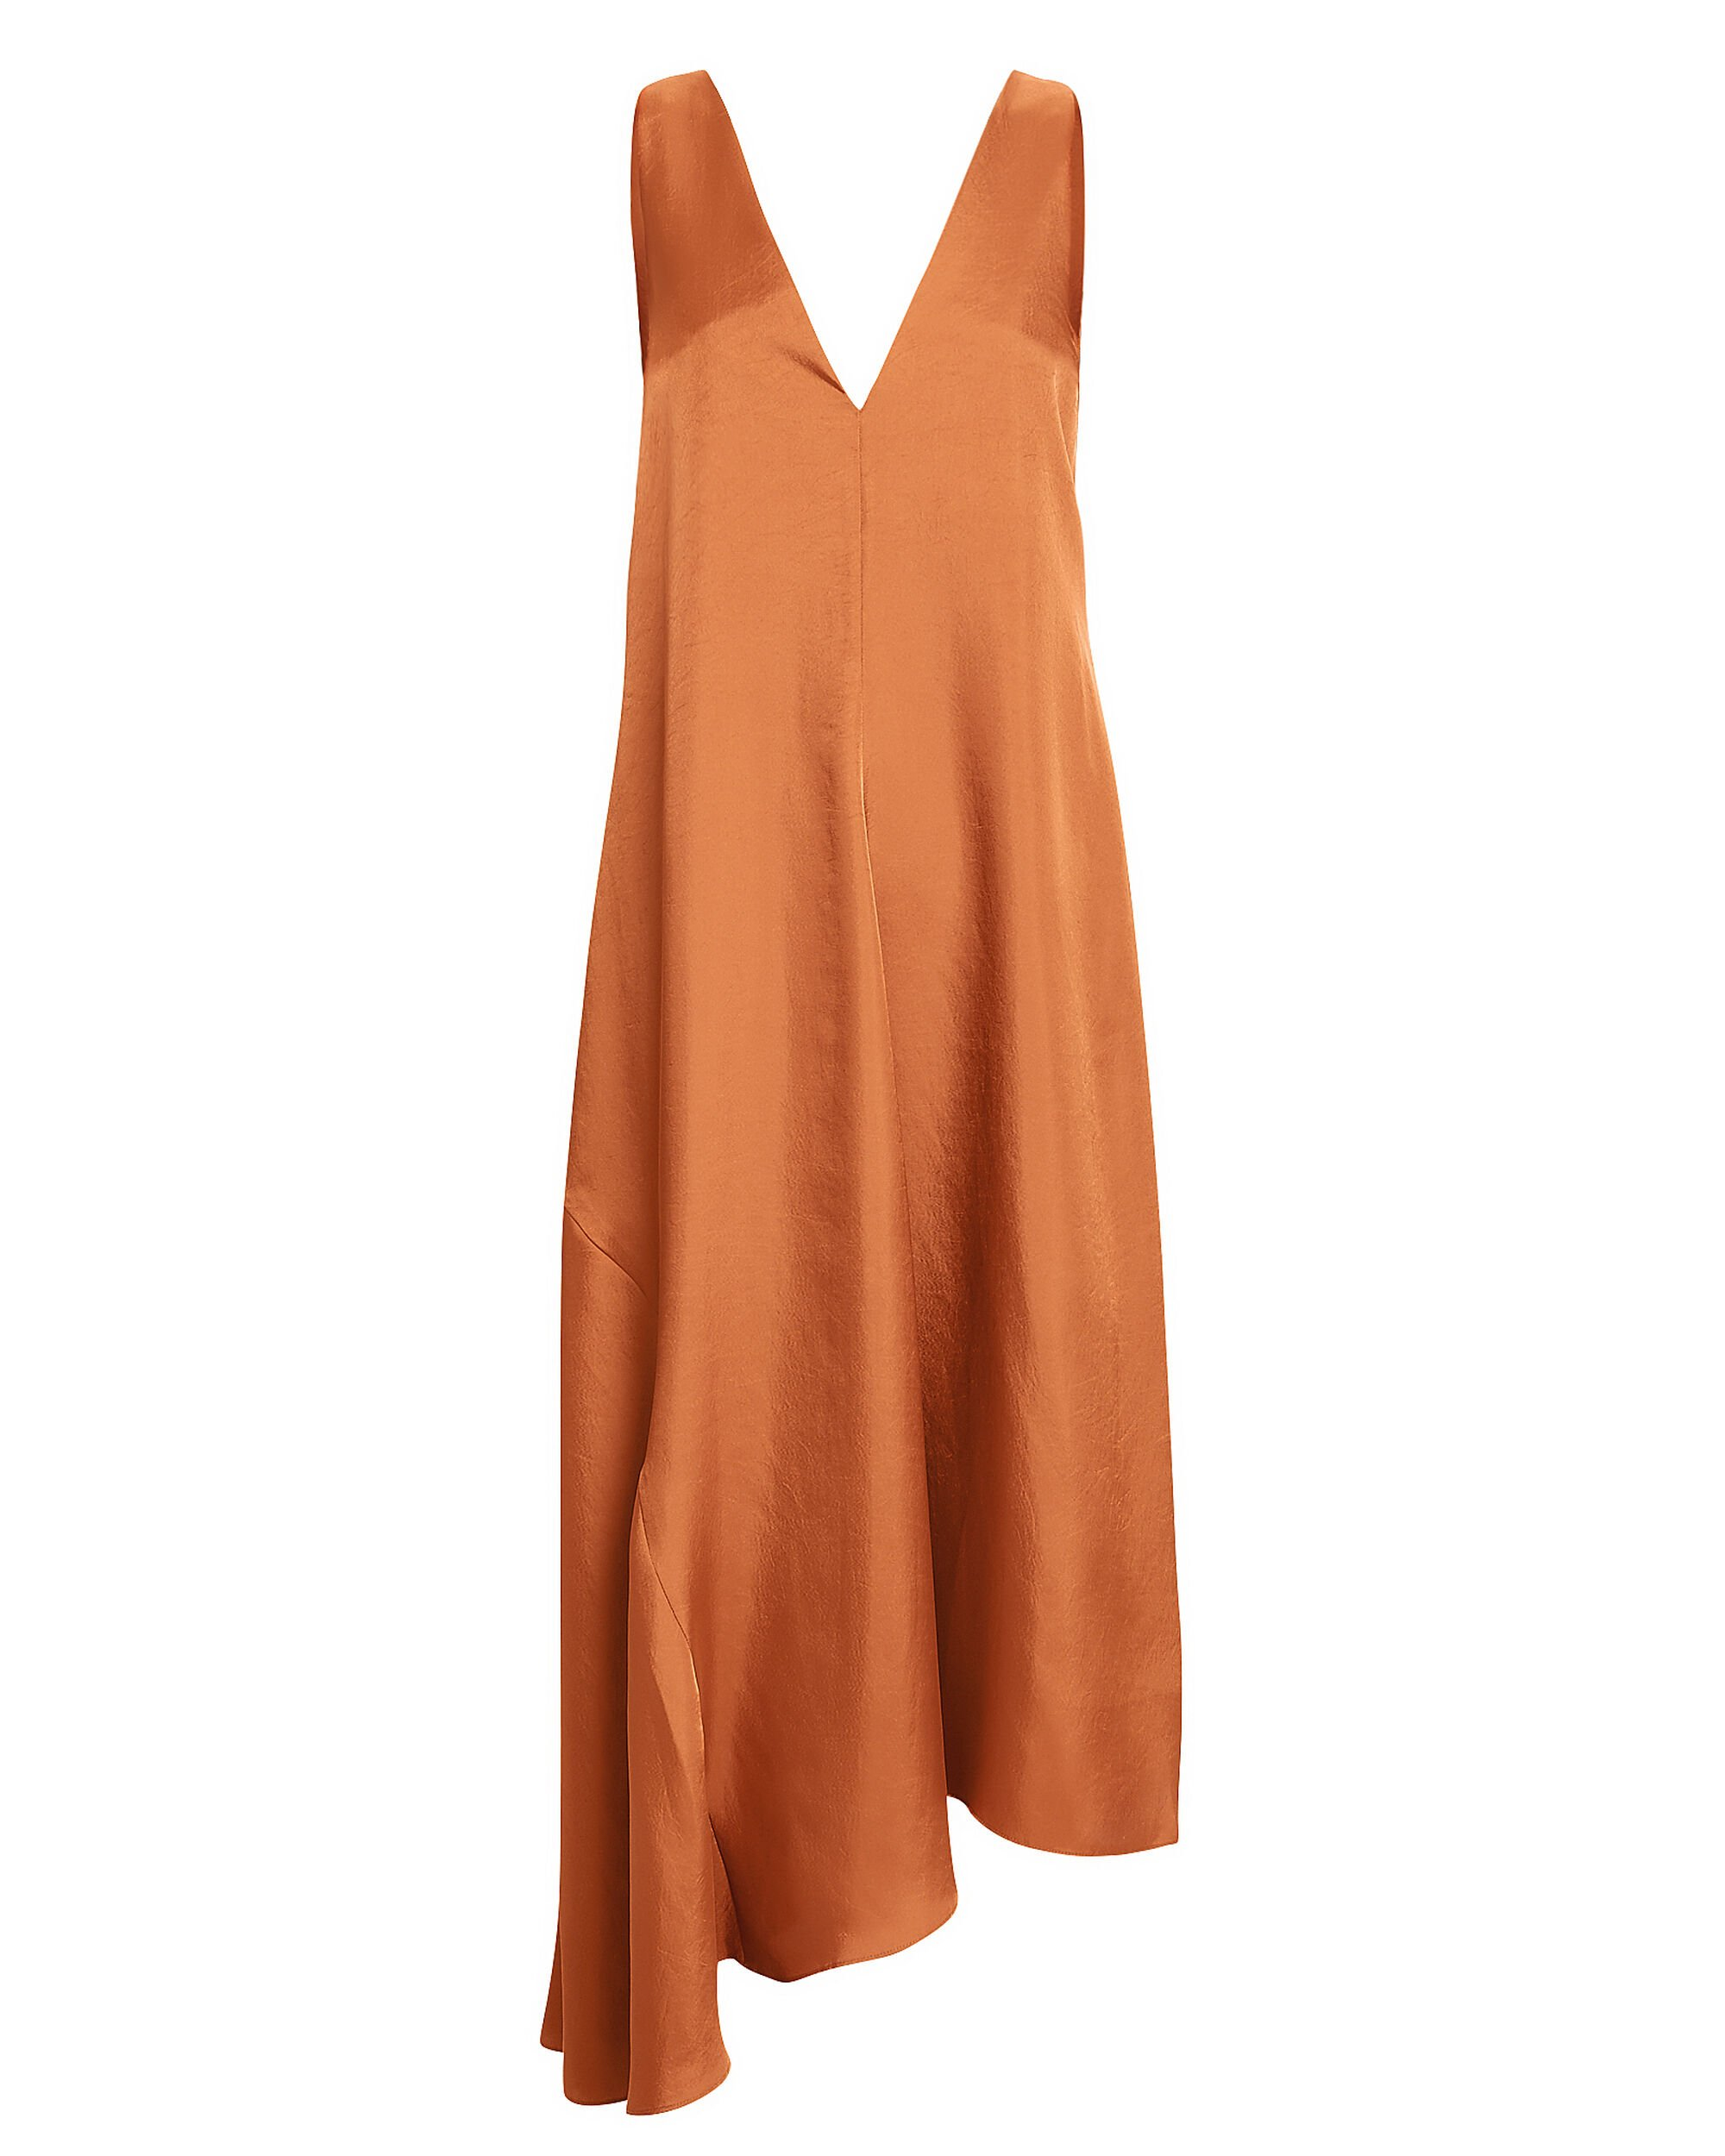 V-Neck Draped Dress, ORANGE, hi-res